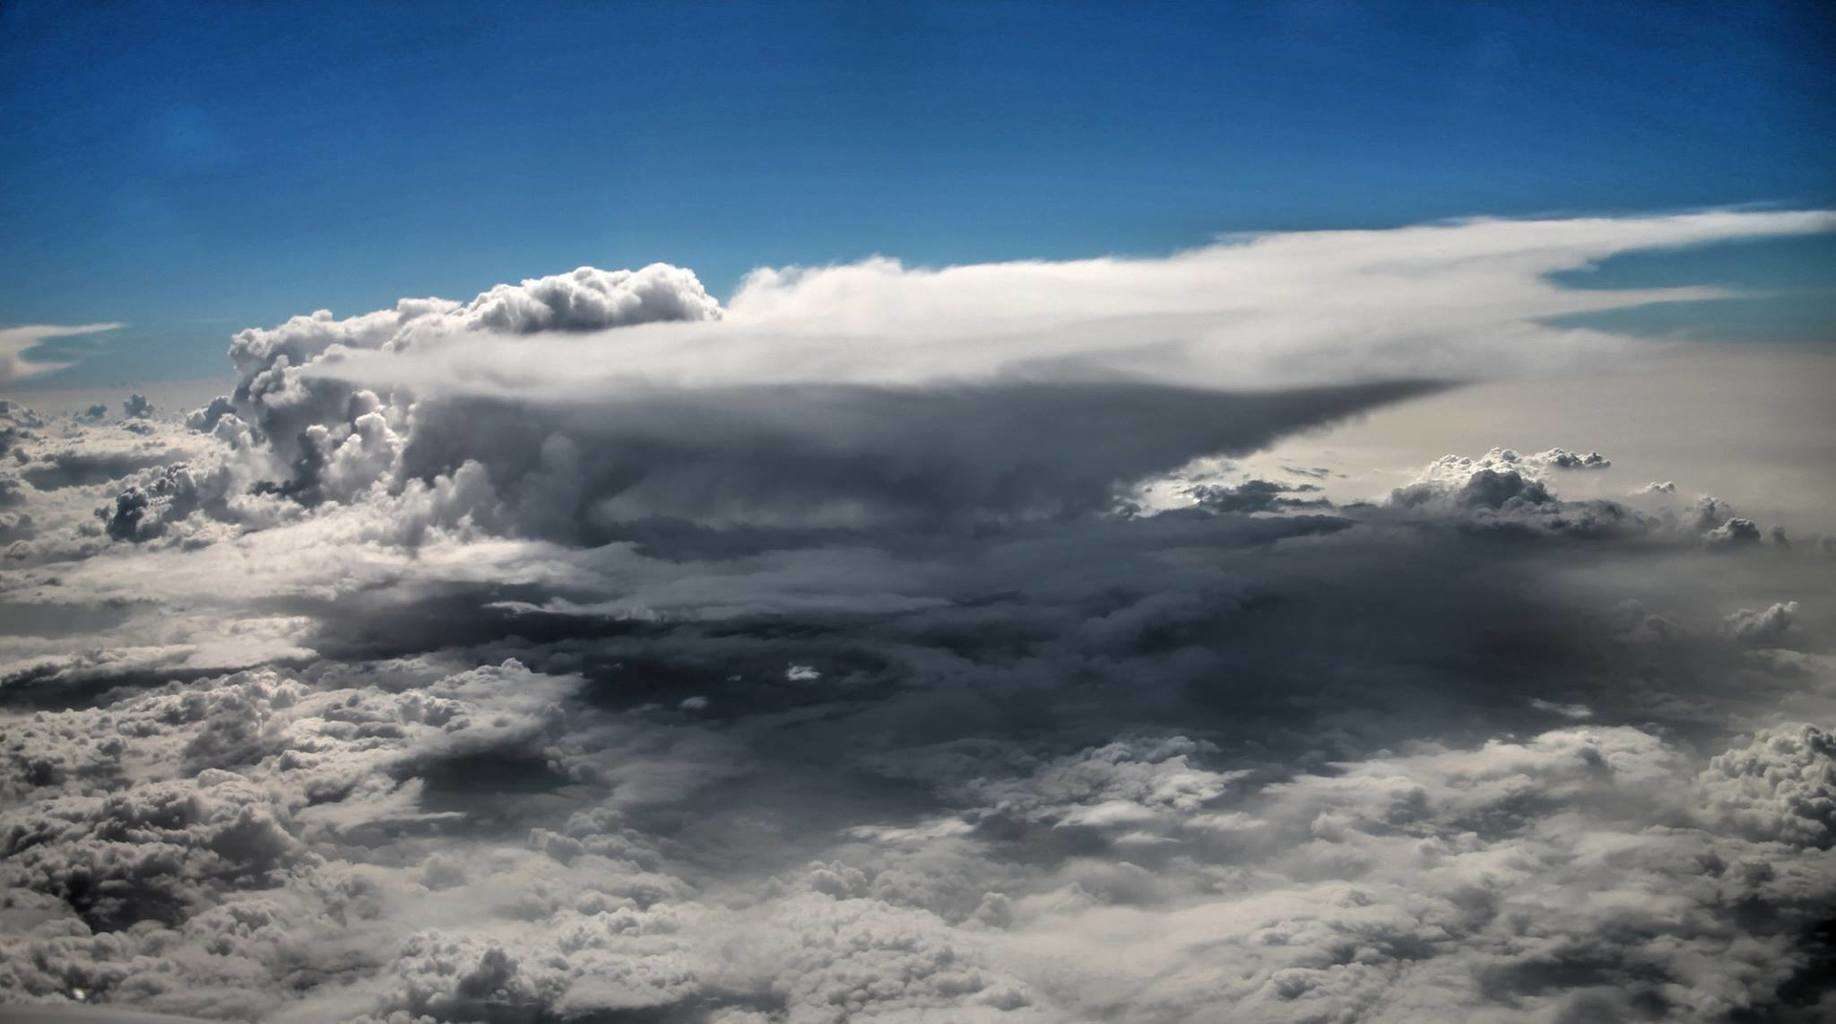 A tornadic Supercell from 35,000 feet. Little Different Perspective